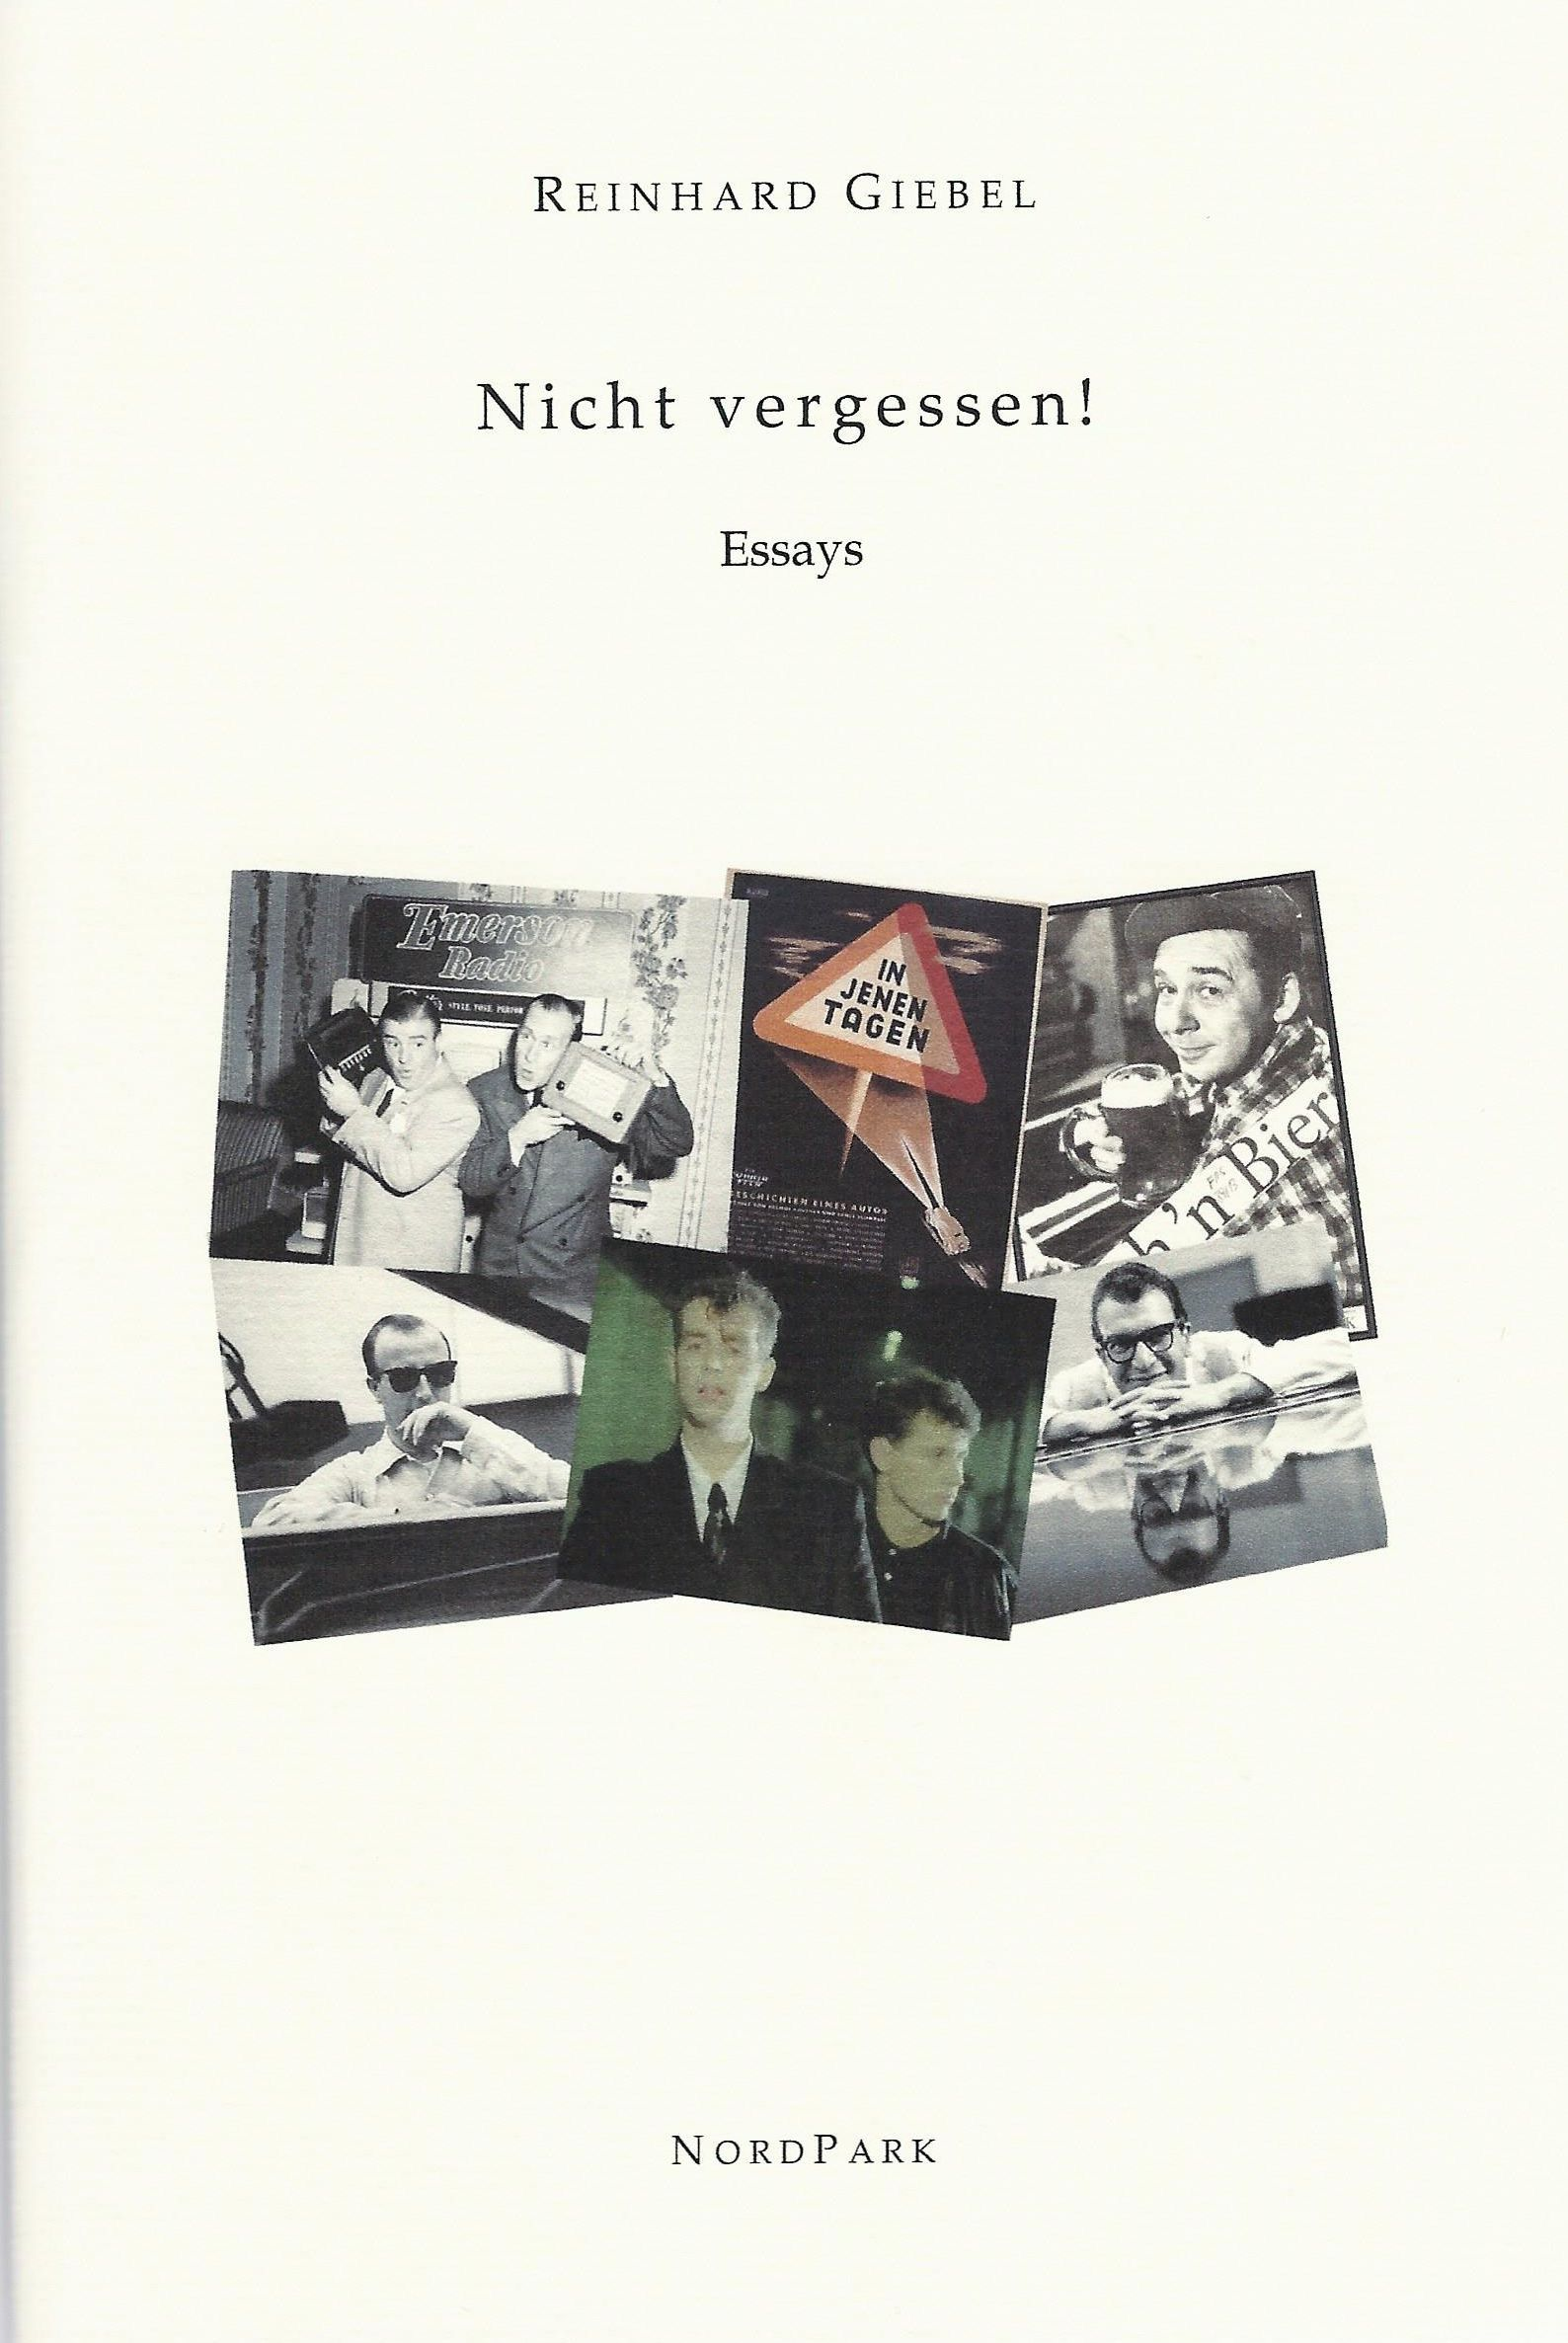 giebel-essays-cover